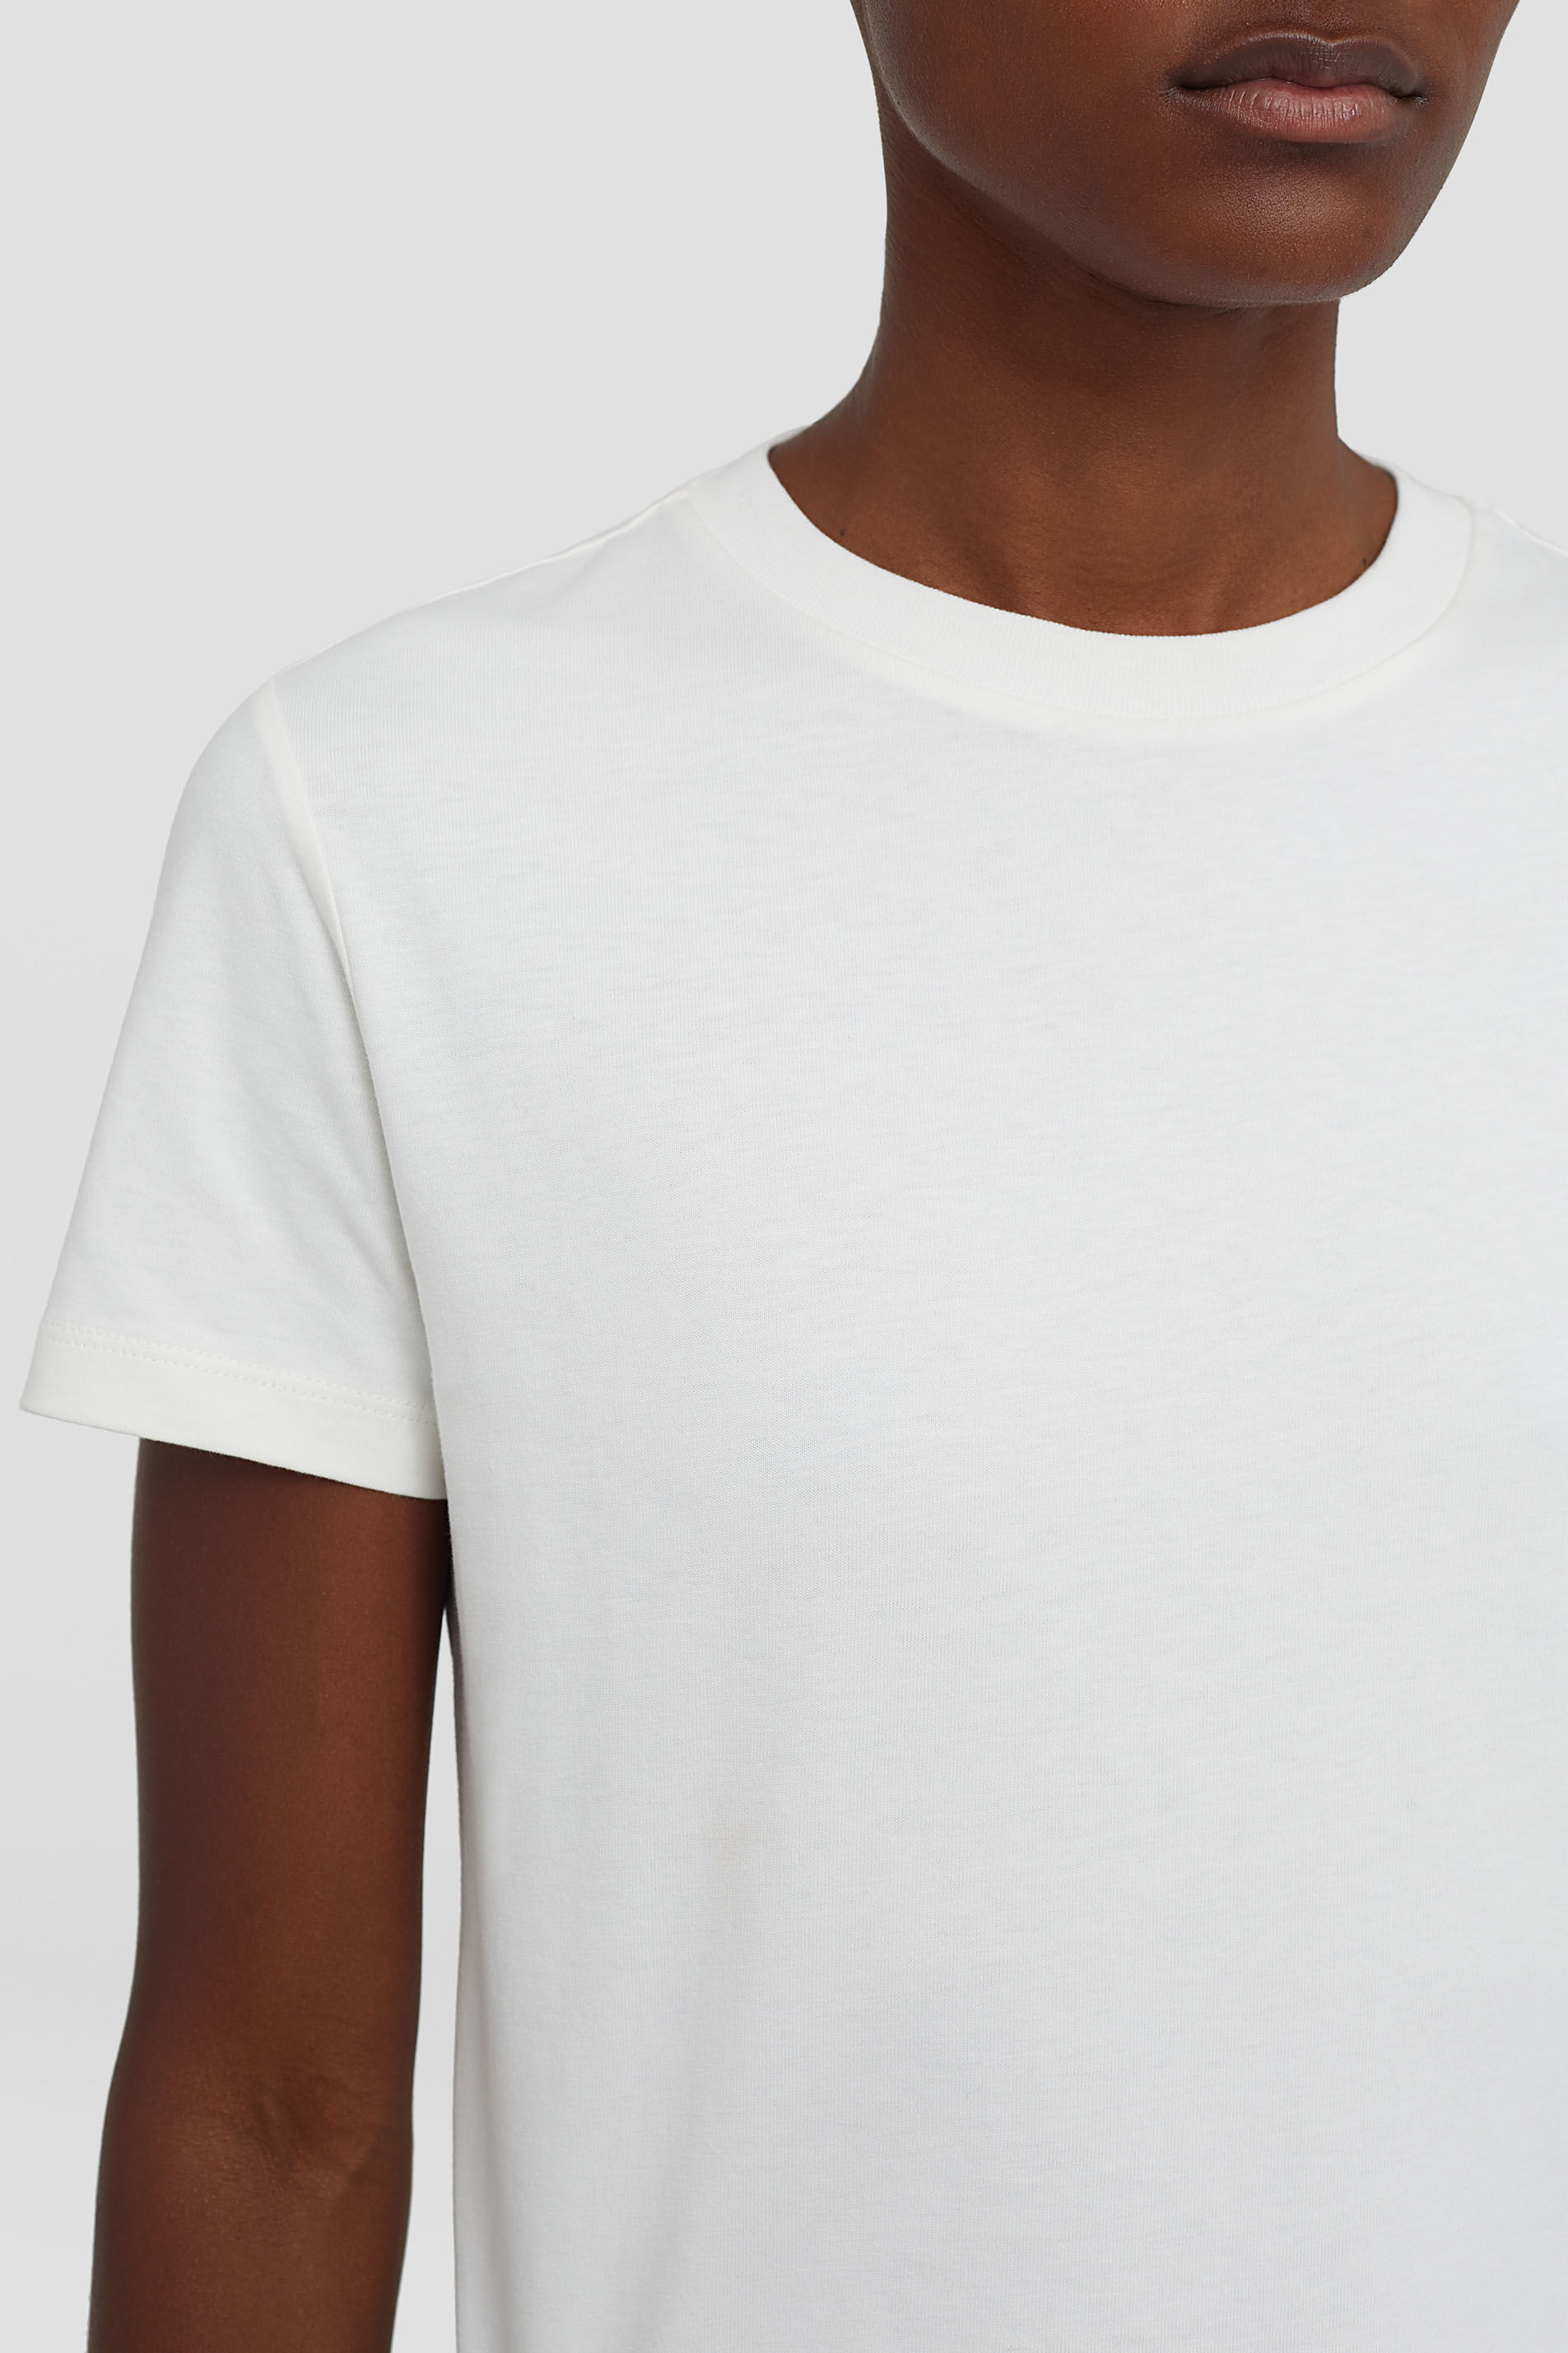 3-Pack T-shirt Set, white, large